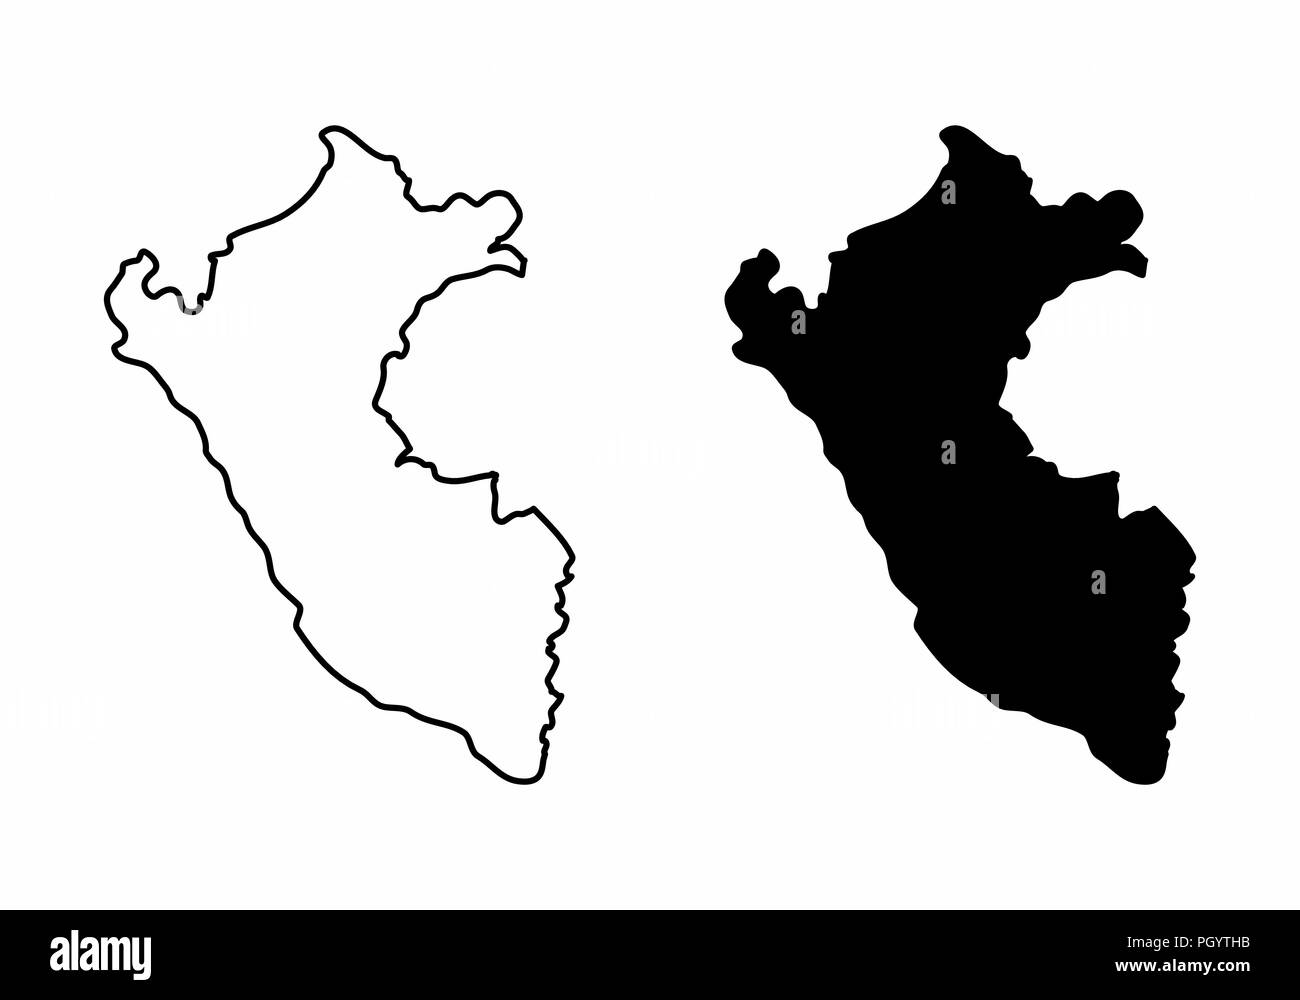 Simplified maps of Peru. Black and white outlines. - Stock Vector